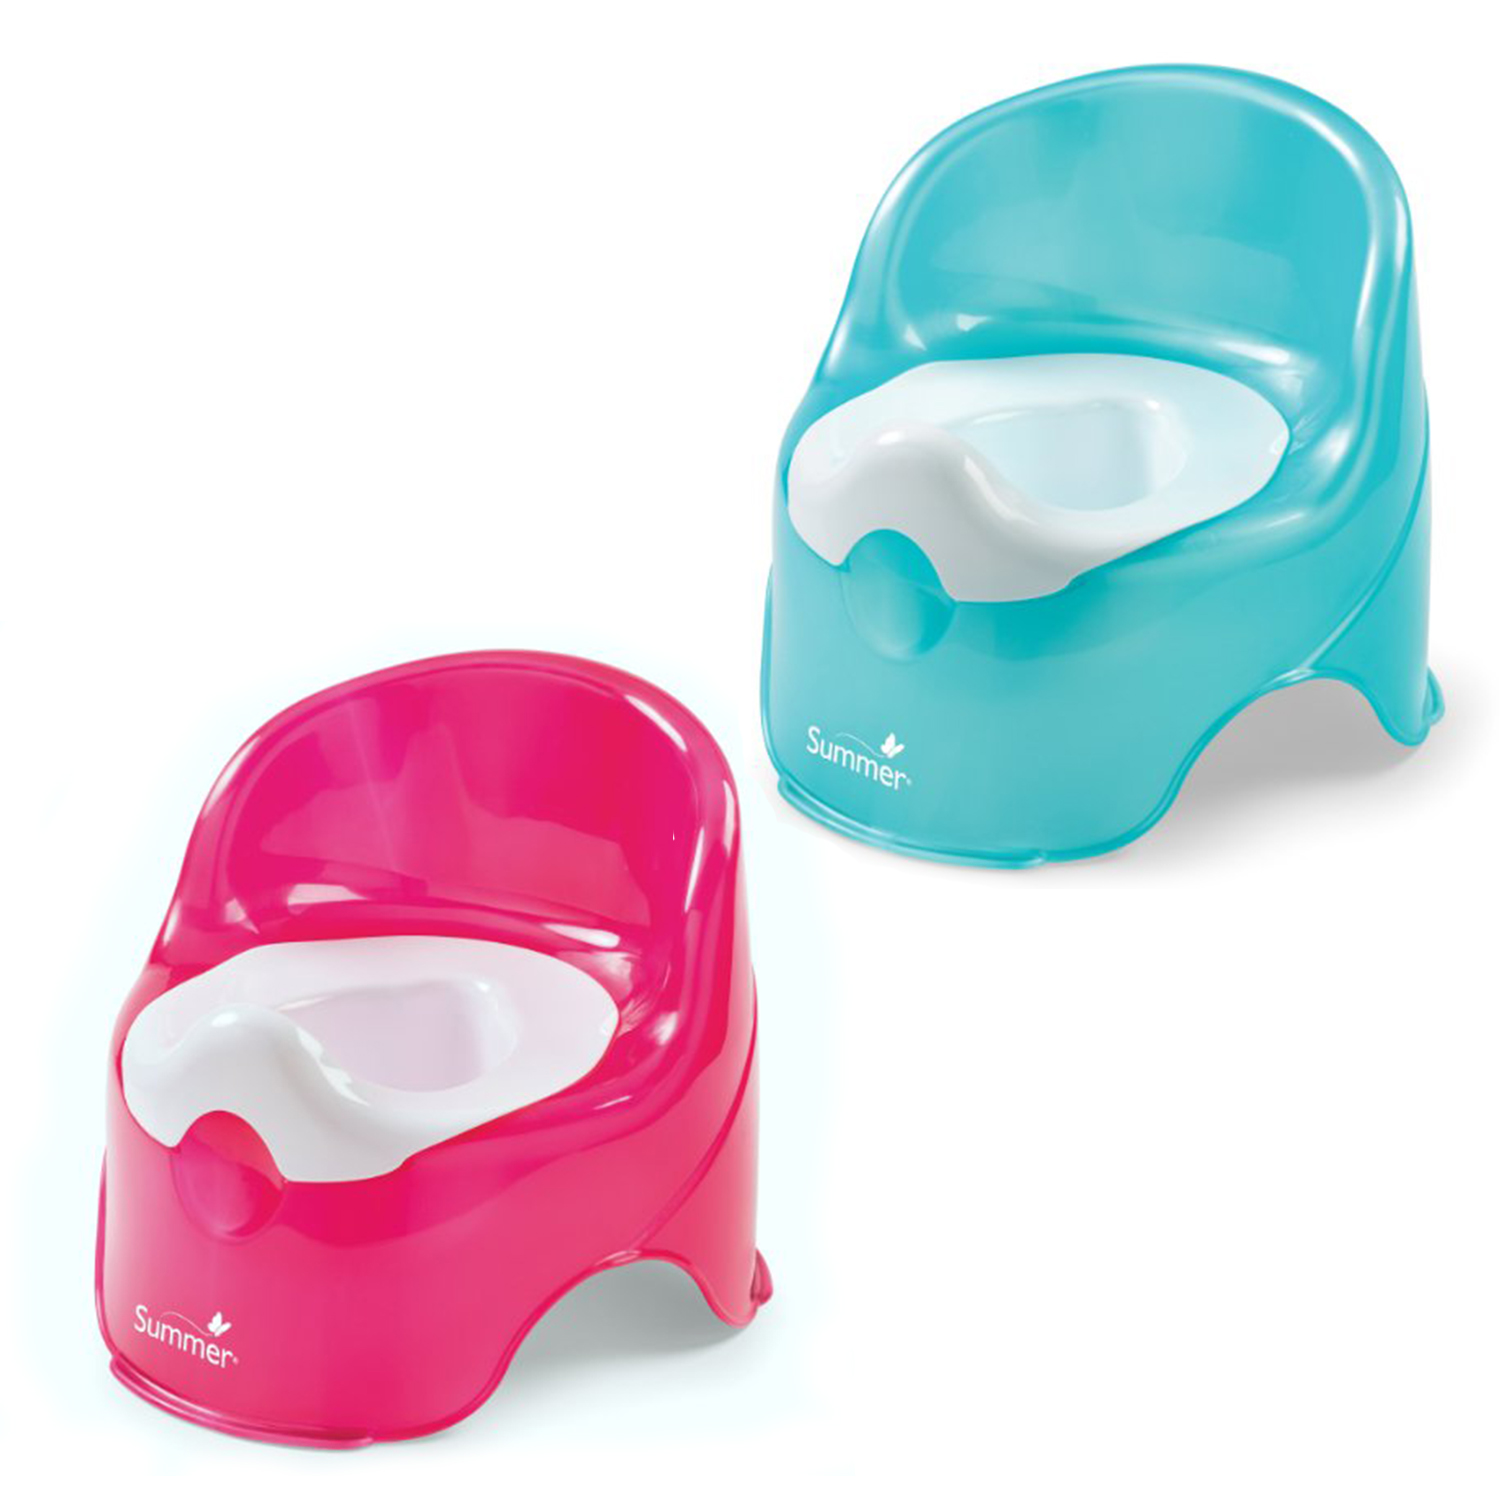 Boys Potty Chair Potty Training Toilet Seat Chair Baby Toddler Kids Pee